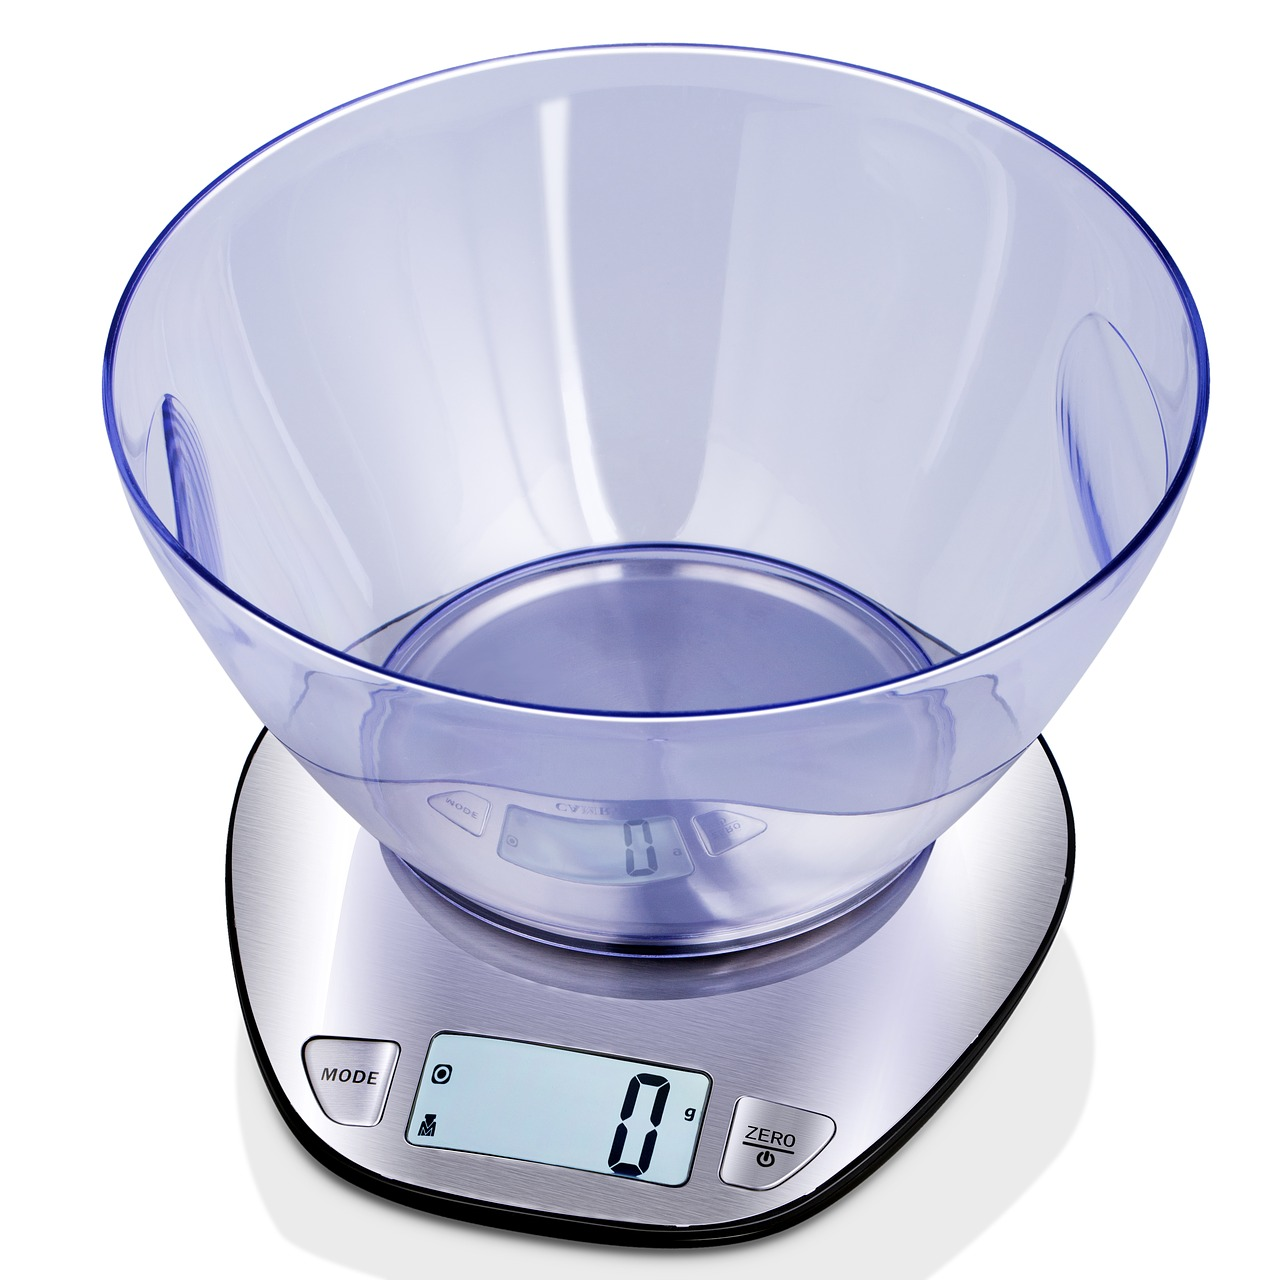 Item-Balance kitchen-scale-2442598 1280.jpg